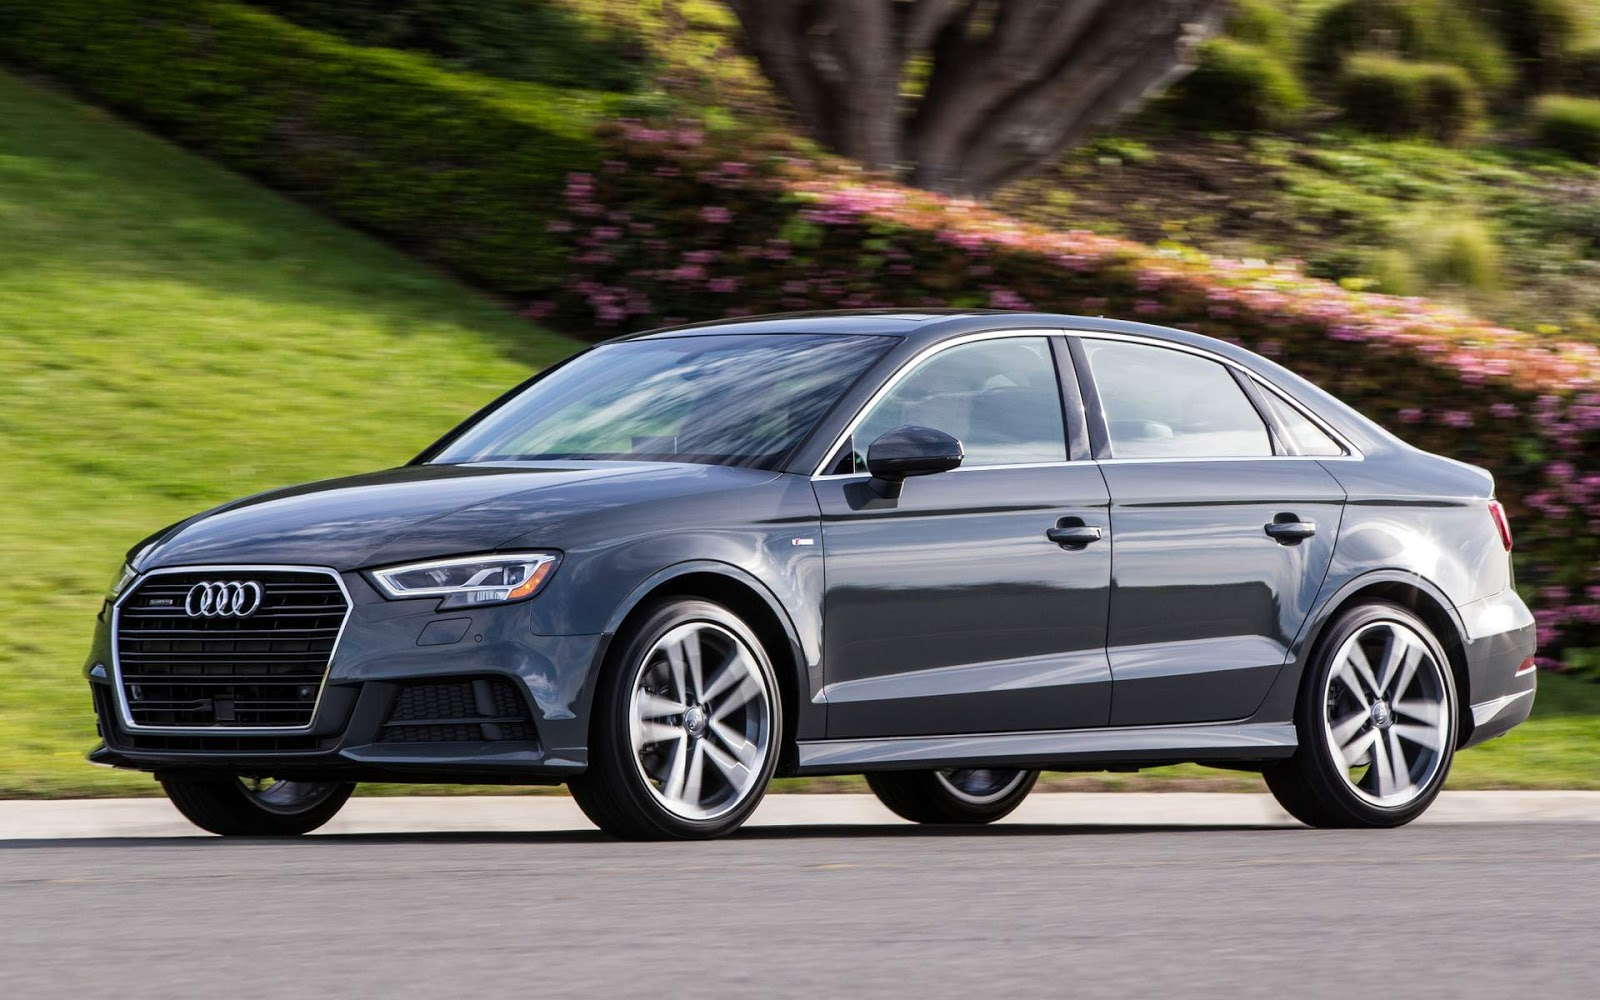 audi a3 sedan 2018 eleito melhor compacto de luxo eua car blog br. Black Bedroom Furniture Sets. Home Design Ideas